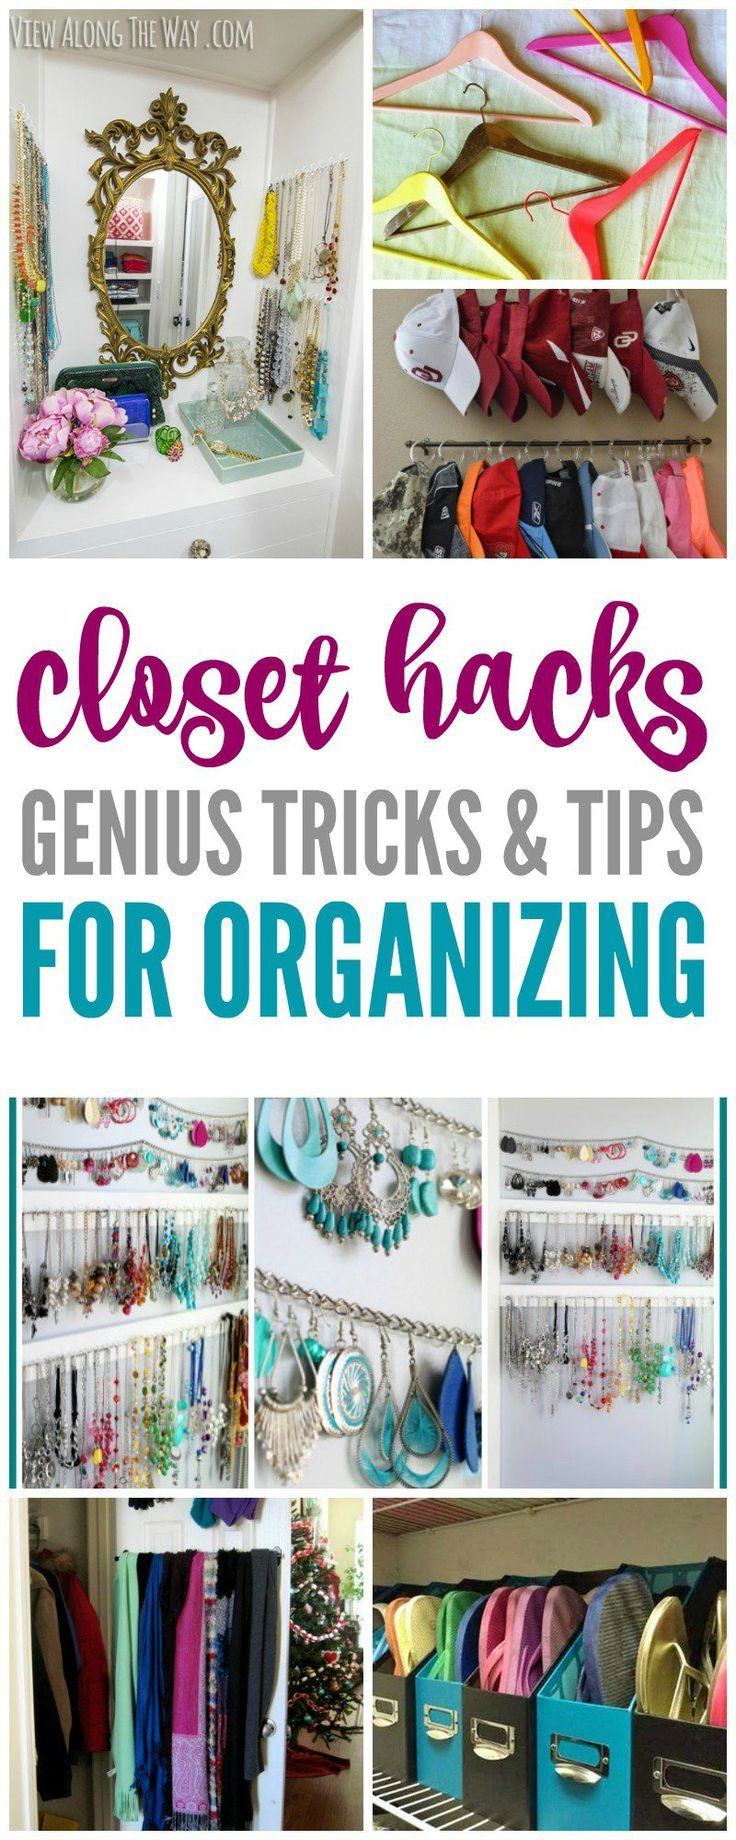 Closet Hacks and Organization Tips! Easy and Simple ways to De-Clutter and Clean Out Your Closets!